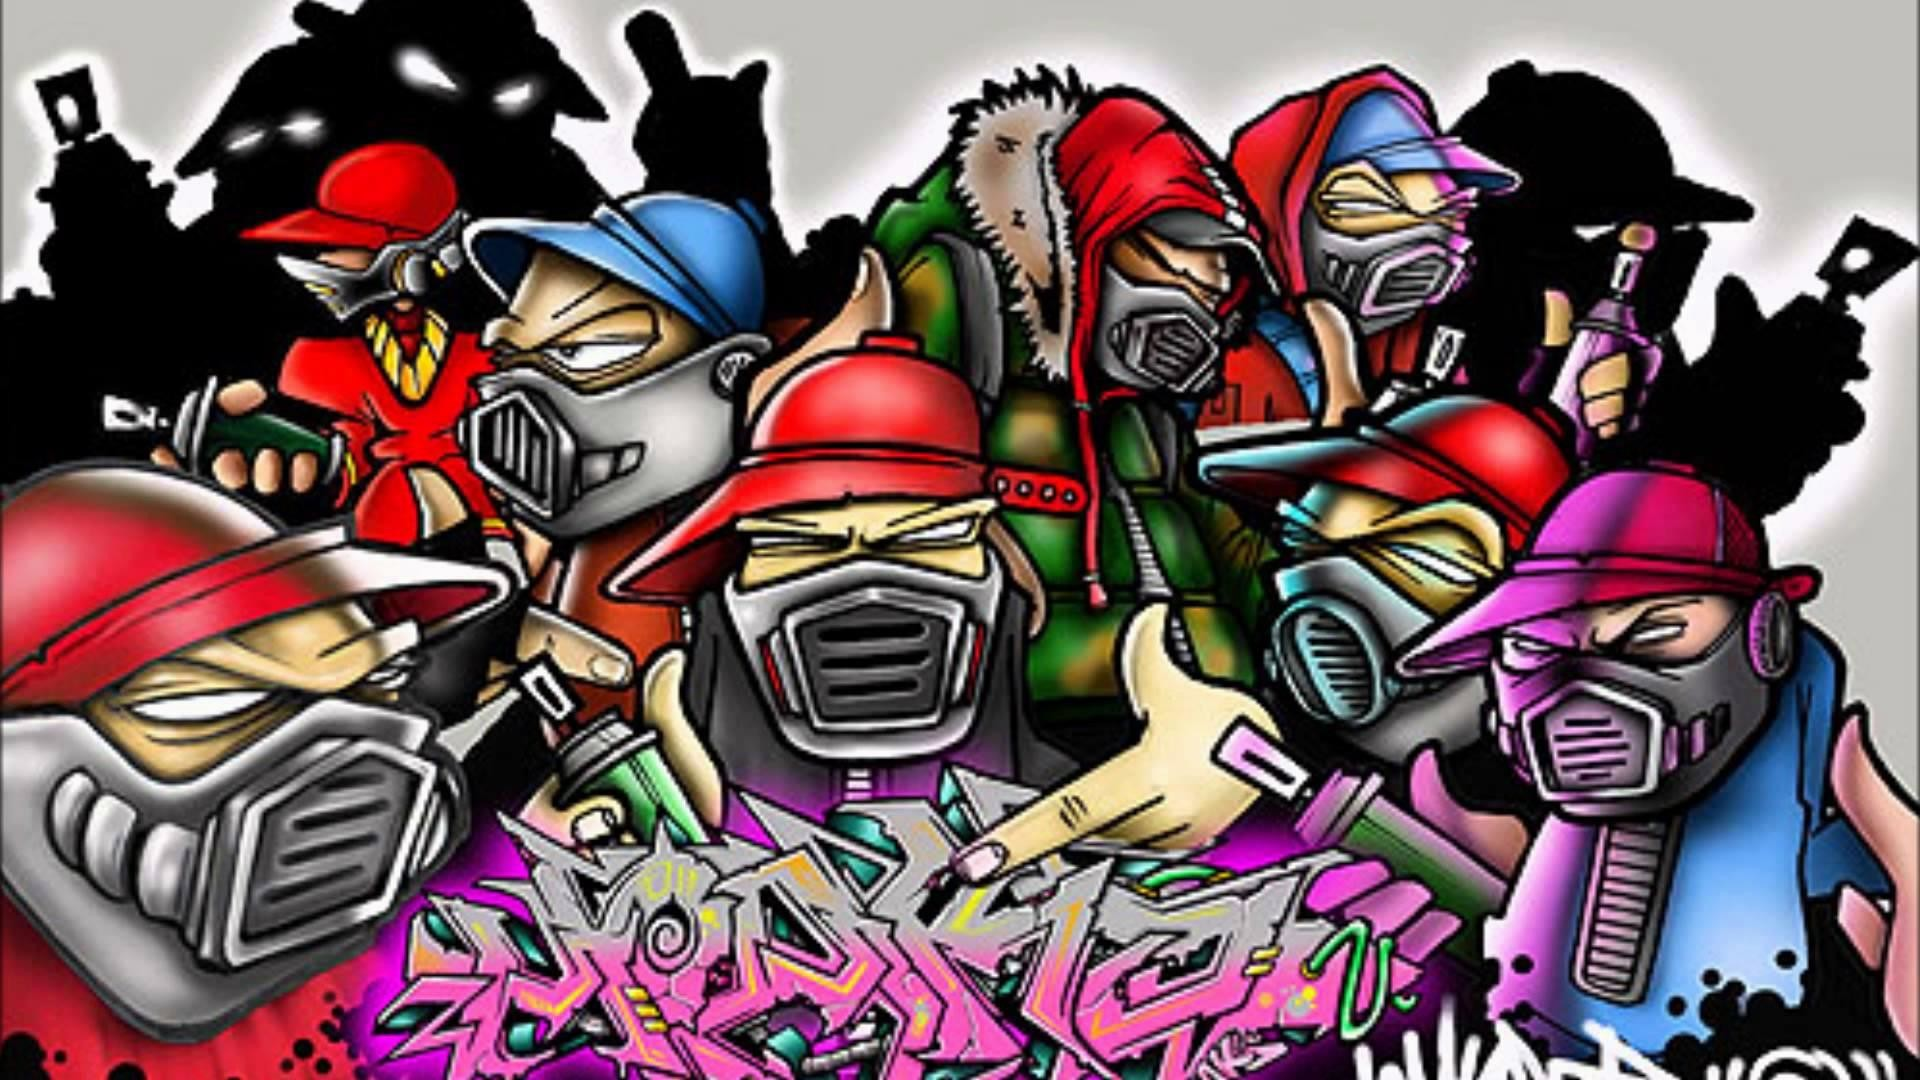 Blood gang wallpaper 67 images - Blood gang cartoon ...